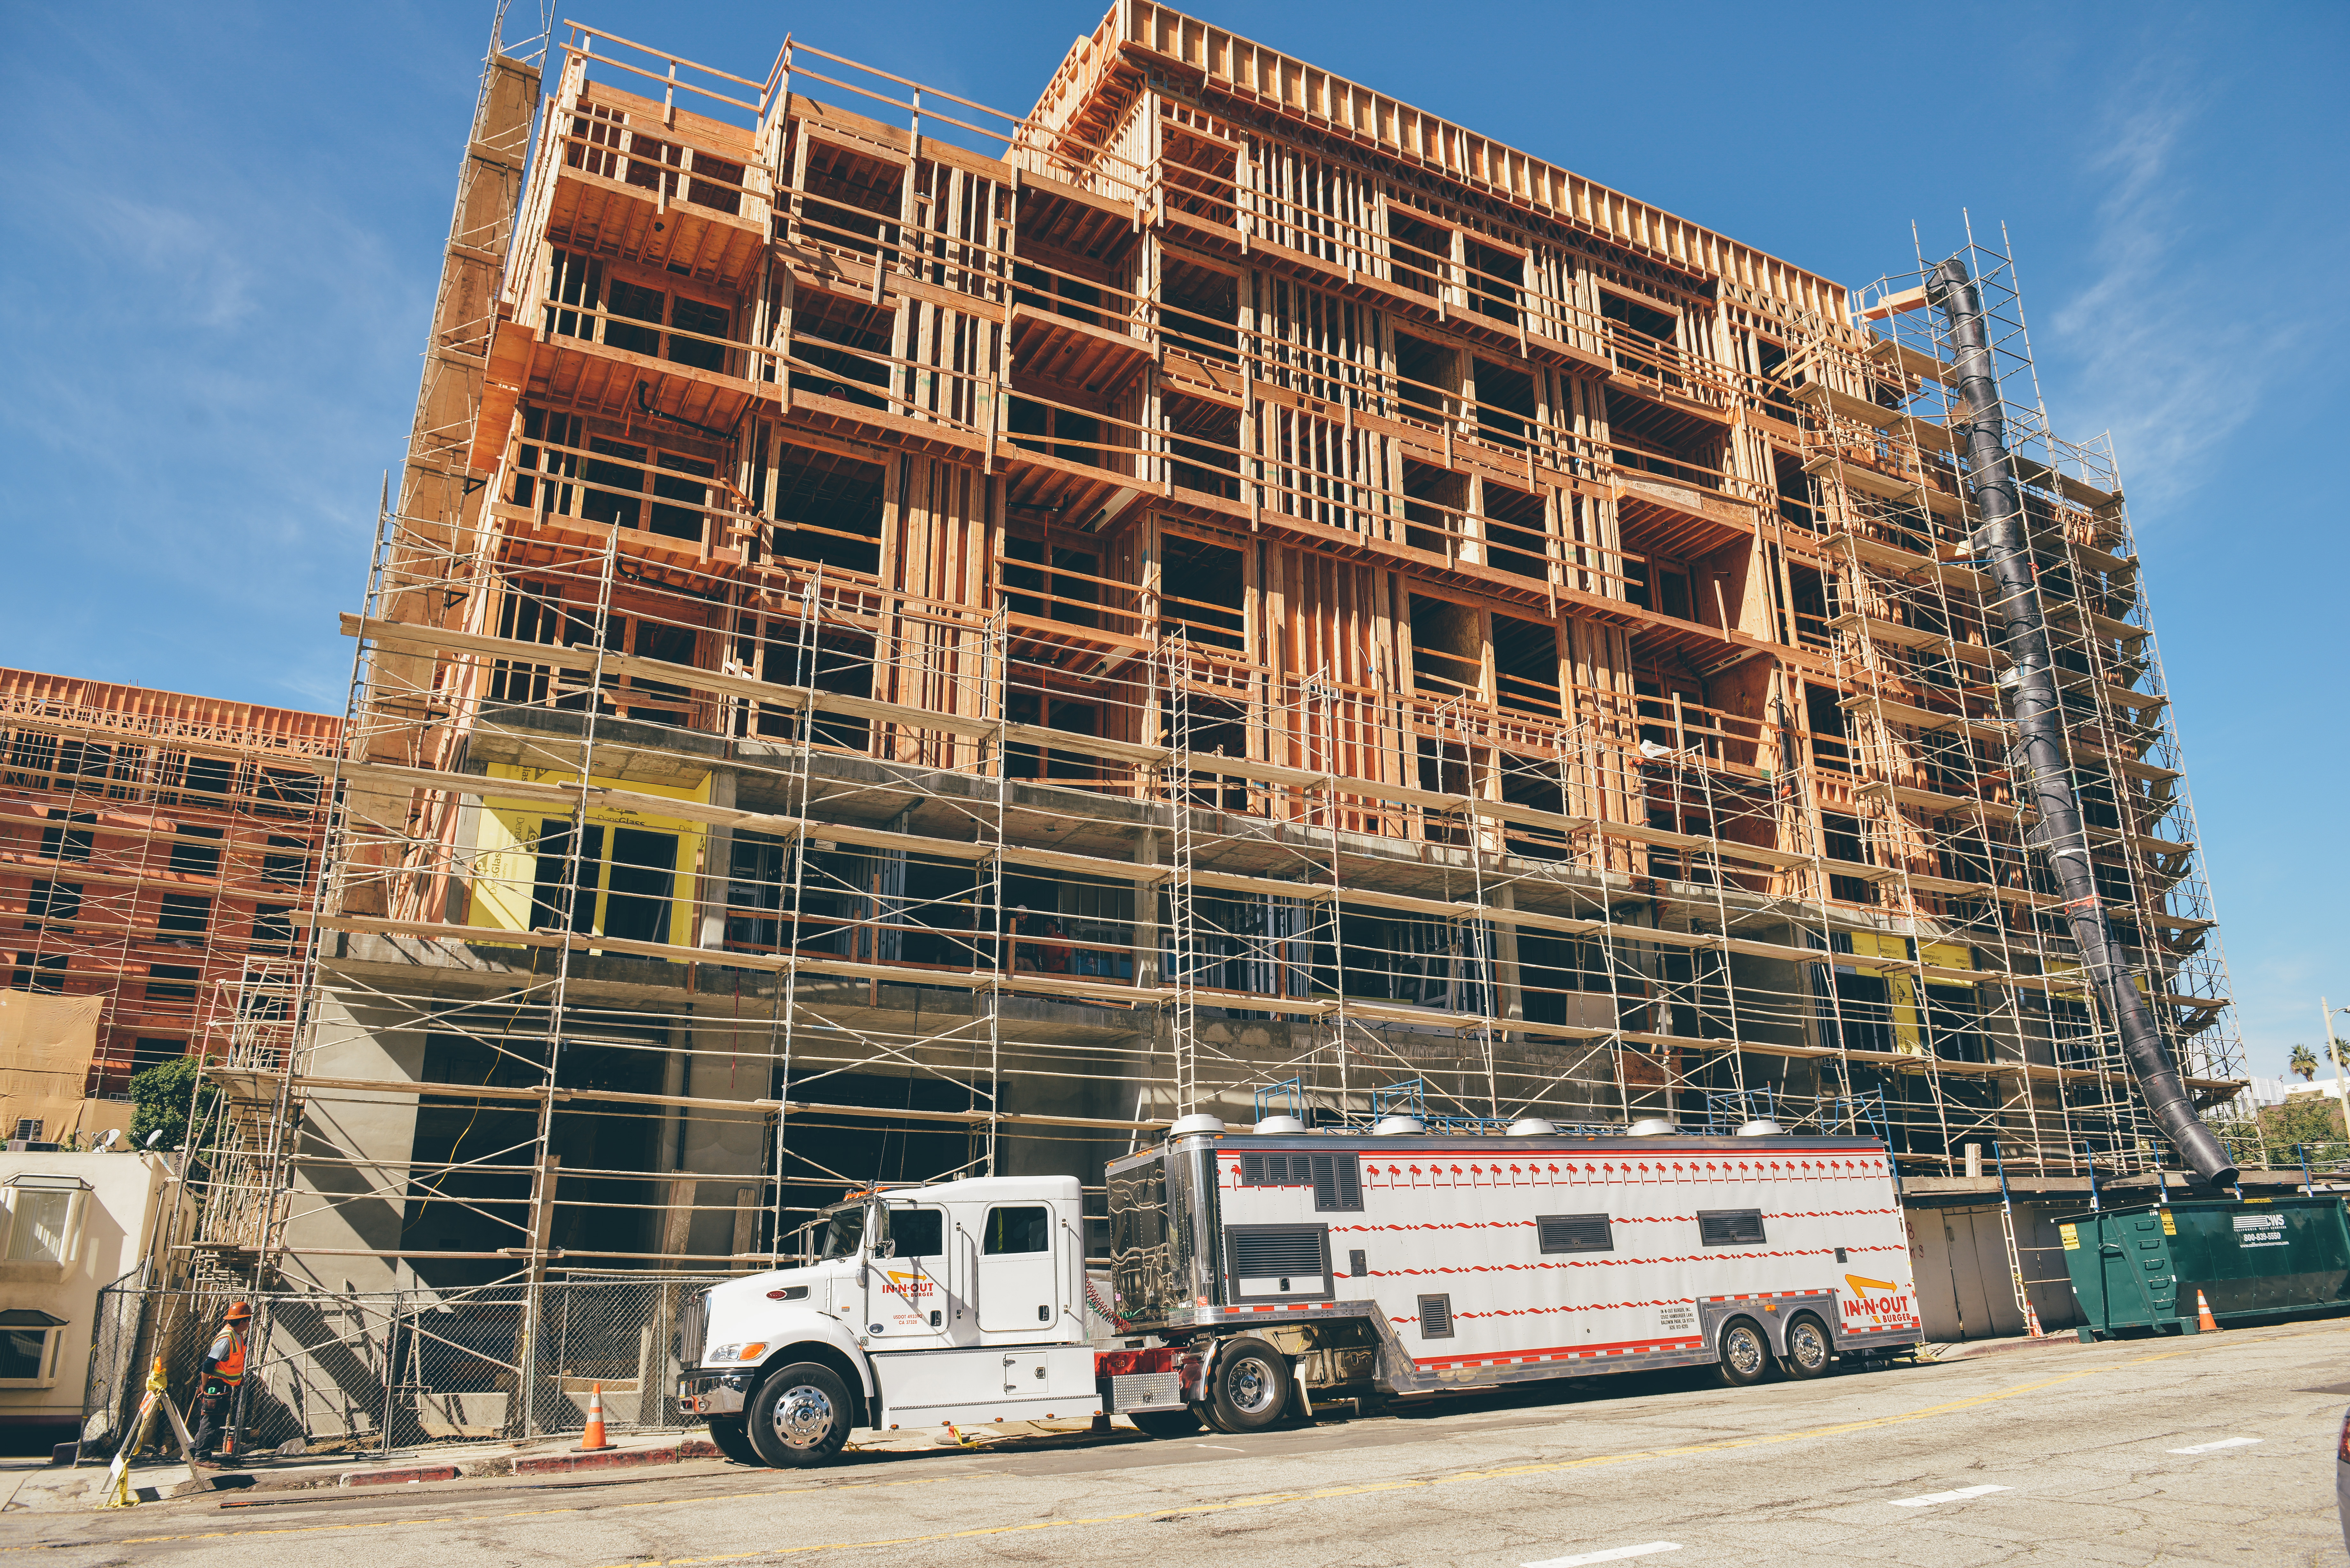 Apartment Building Construction koreatown mixed user with target nearly complete - curbed la